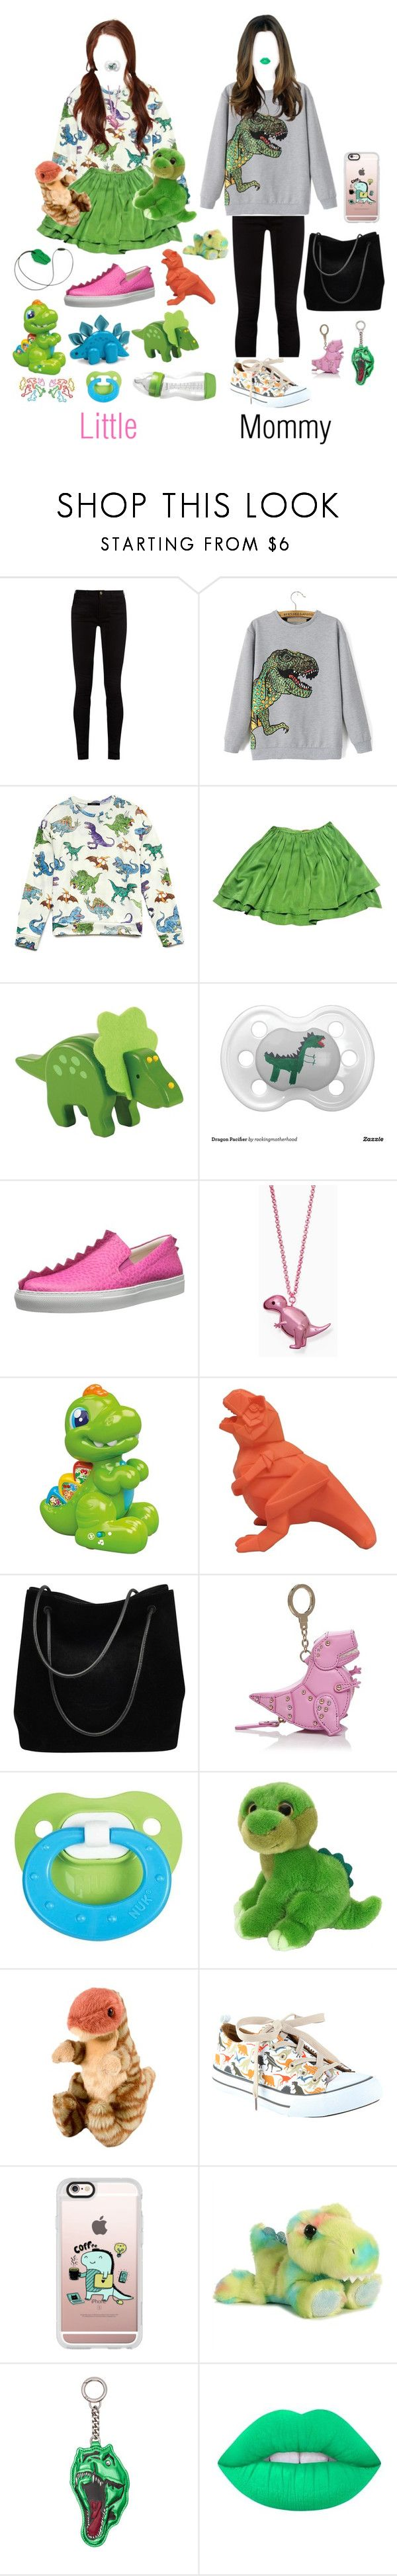 """Dino Mommy And Dino Little!"" by be-robinson ❤ liked on Polyvore featuring Gucci, Forever 21, Peter Jensen, Dinosaurs, Boutique Moschino, Kate Spade, Disaster Designs, Itsy Bitsy, Casetify and Yves Saint Laurent"